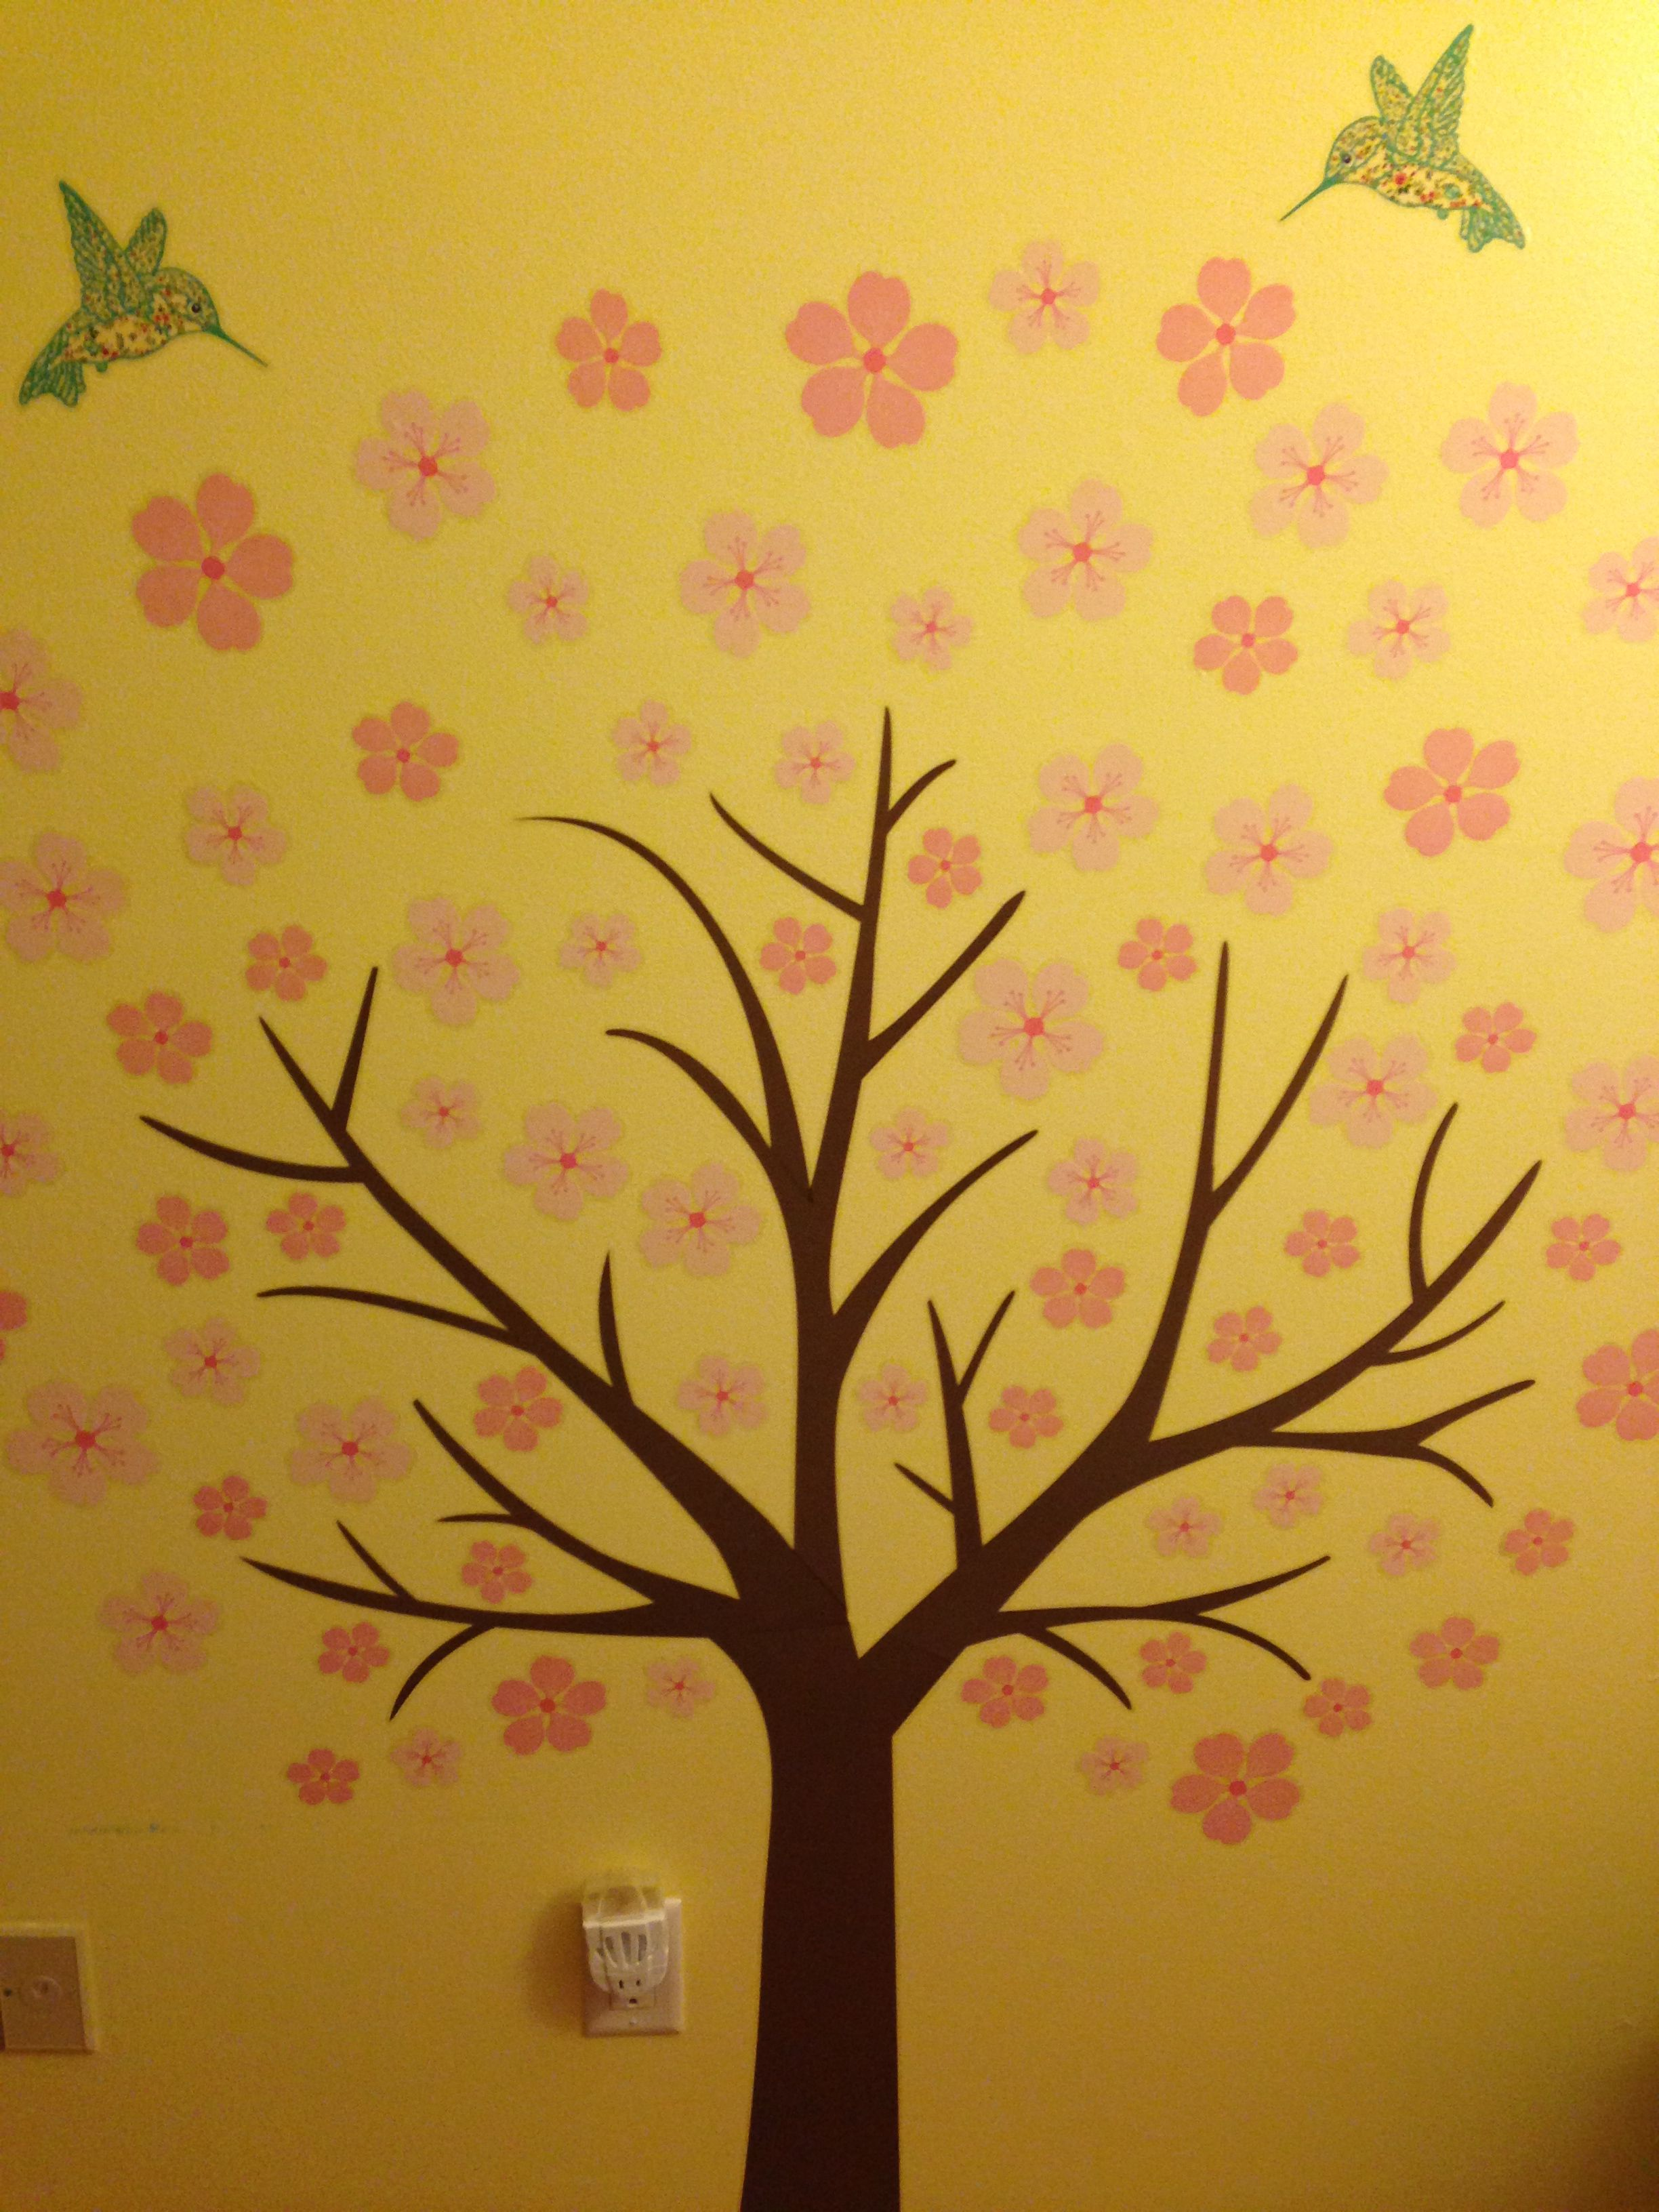 Isabella S Cherry Blossom Tree In Her Room Cherry Blossom Tree Blossom Trees Home Decor Decals